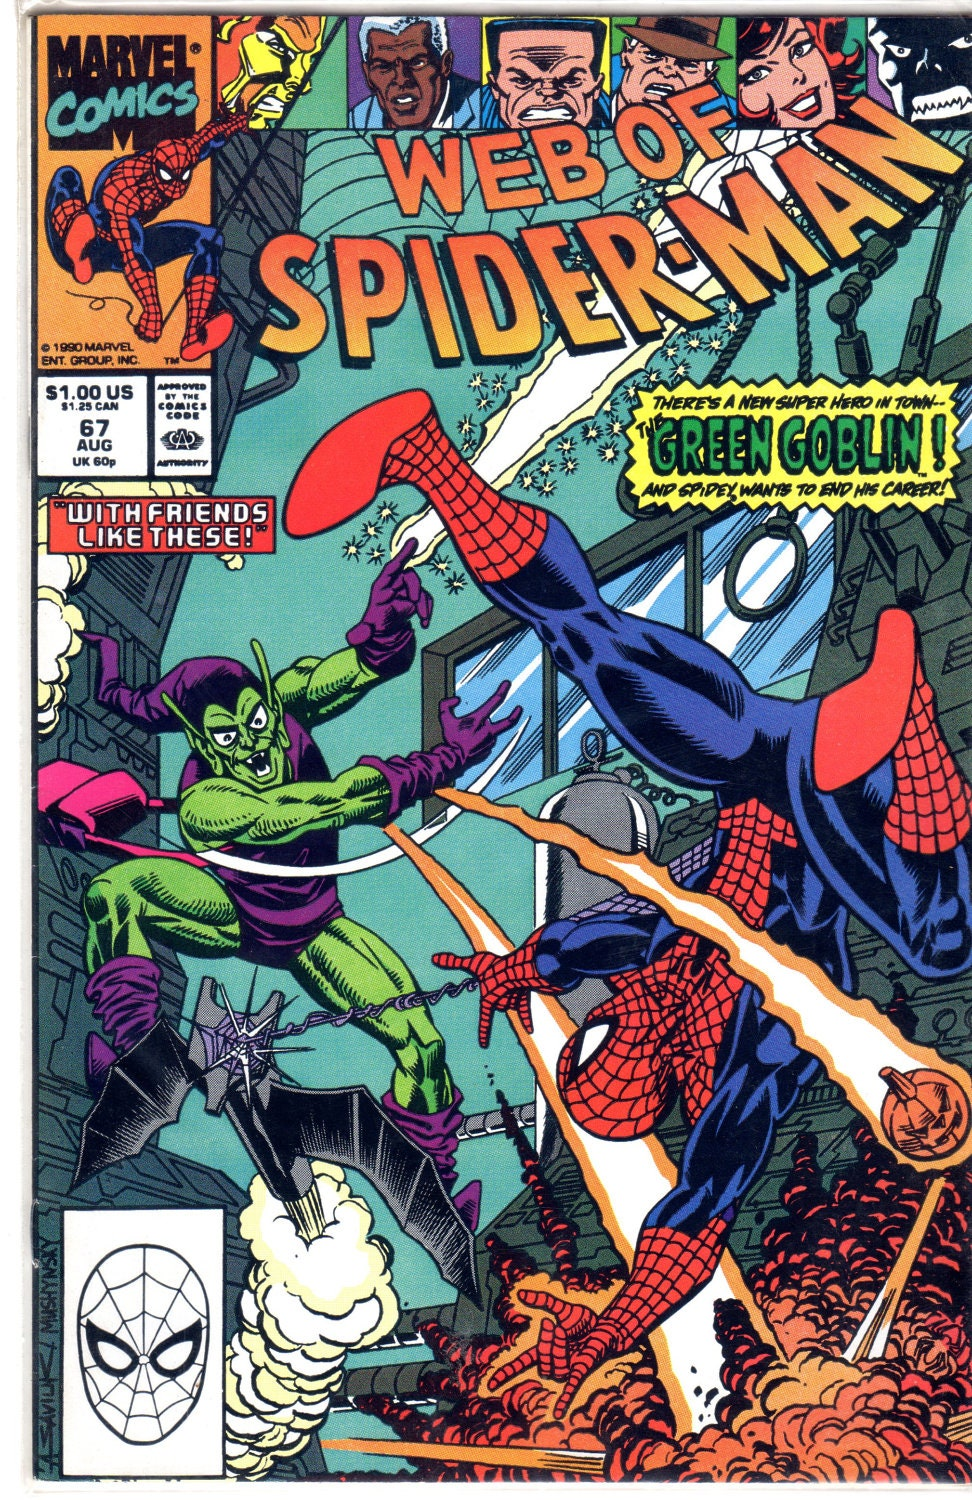 Vintage Spiderman Comic Book Issue No. 67 August 1990 Green